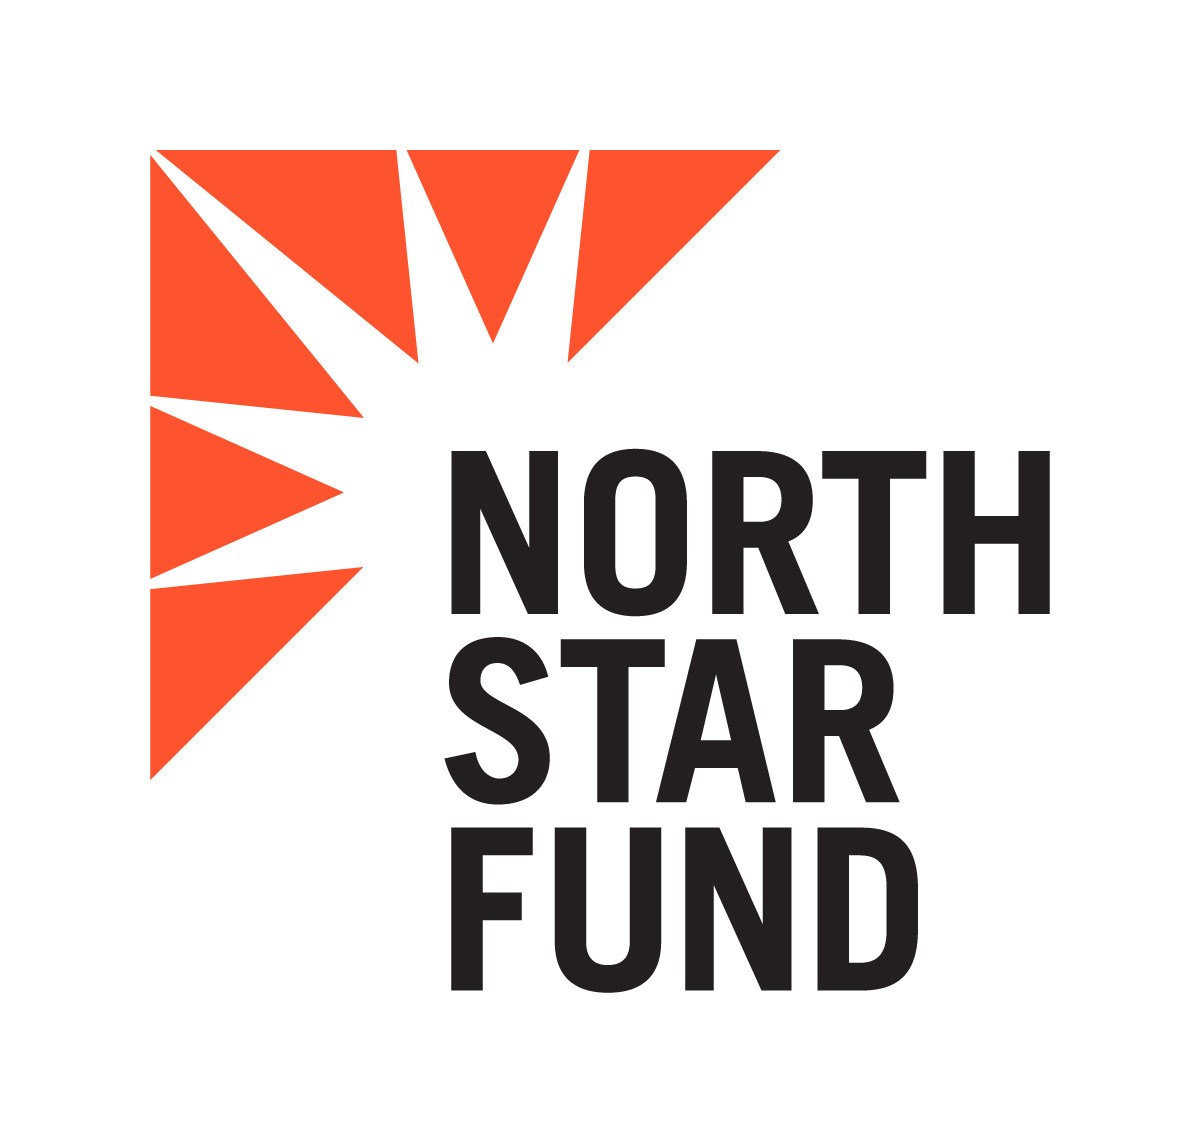 North-Star-Fund-Logo-1200.jpg